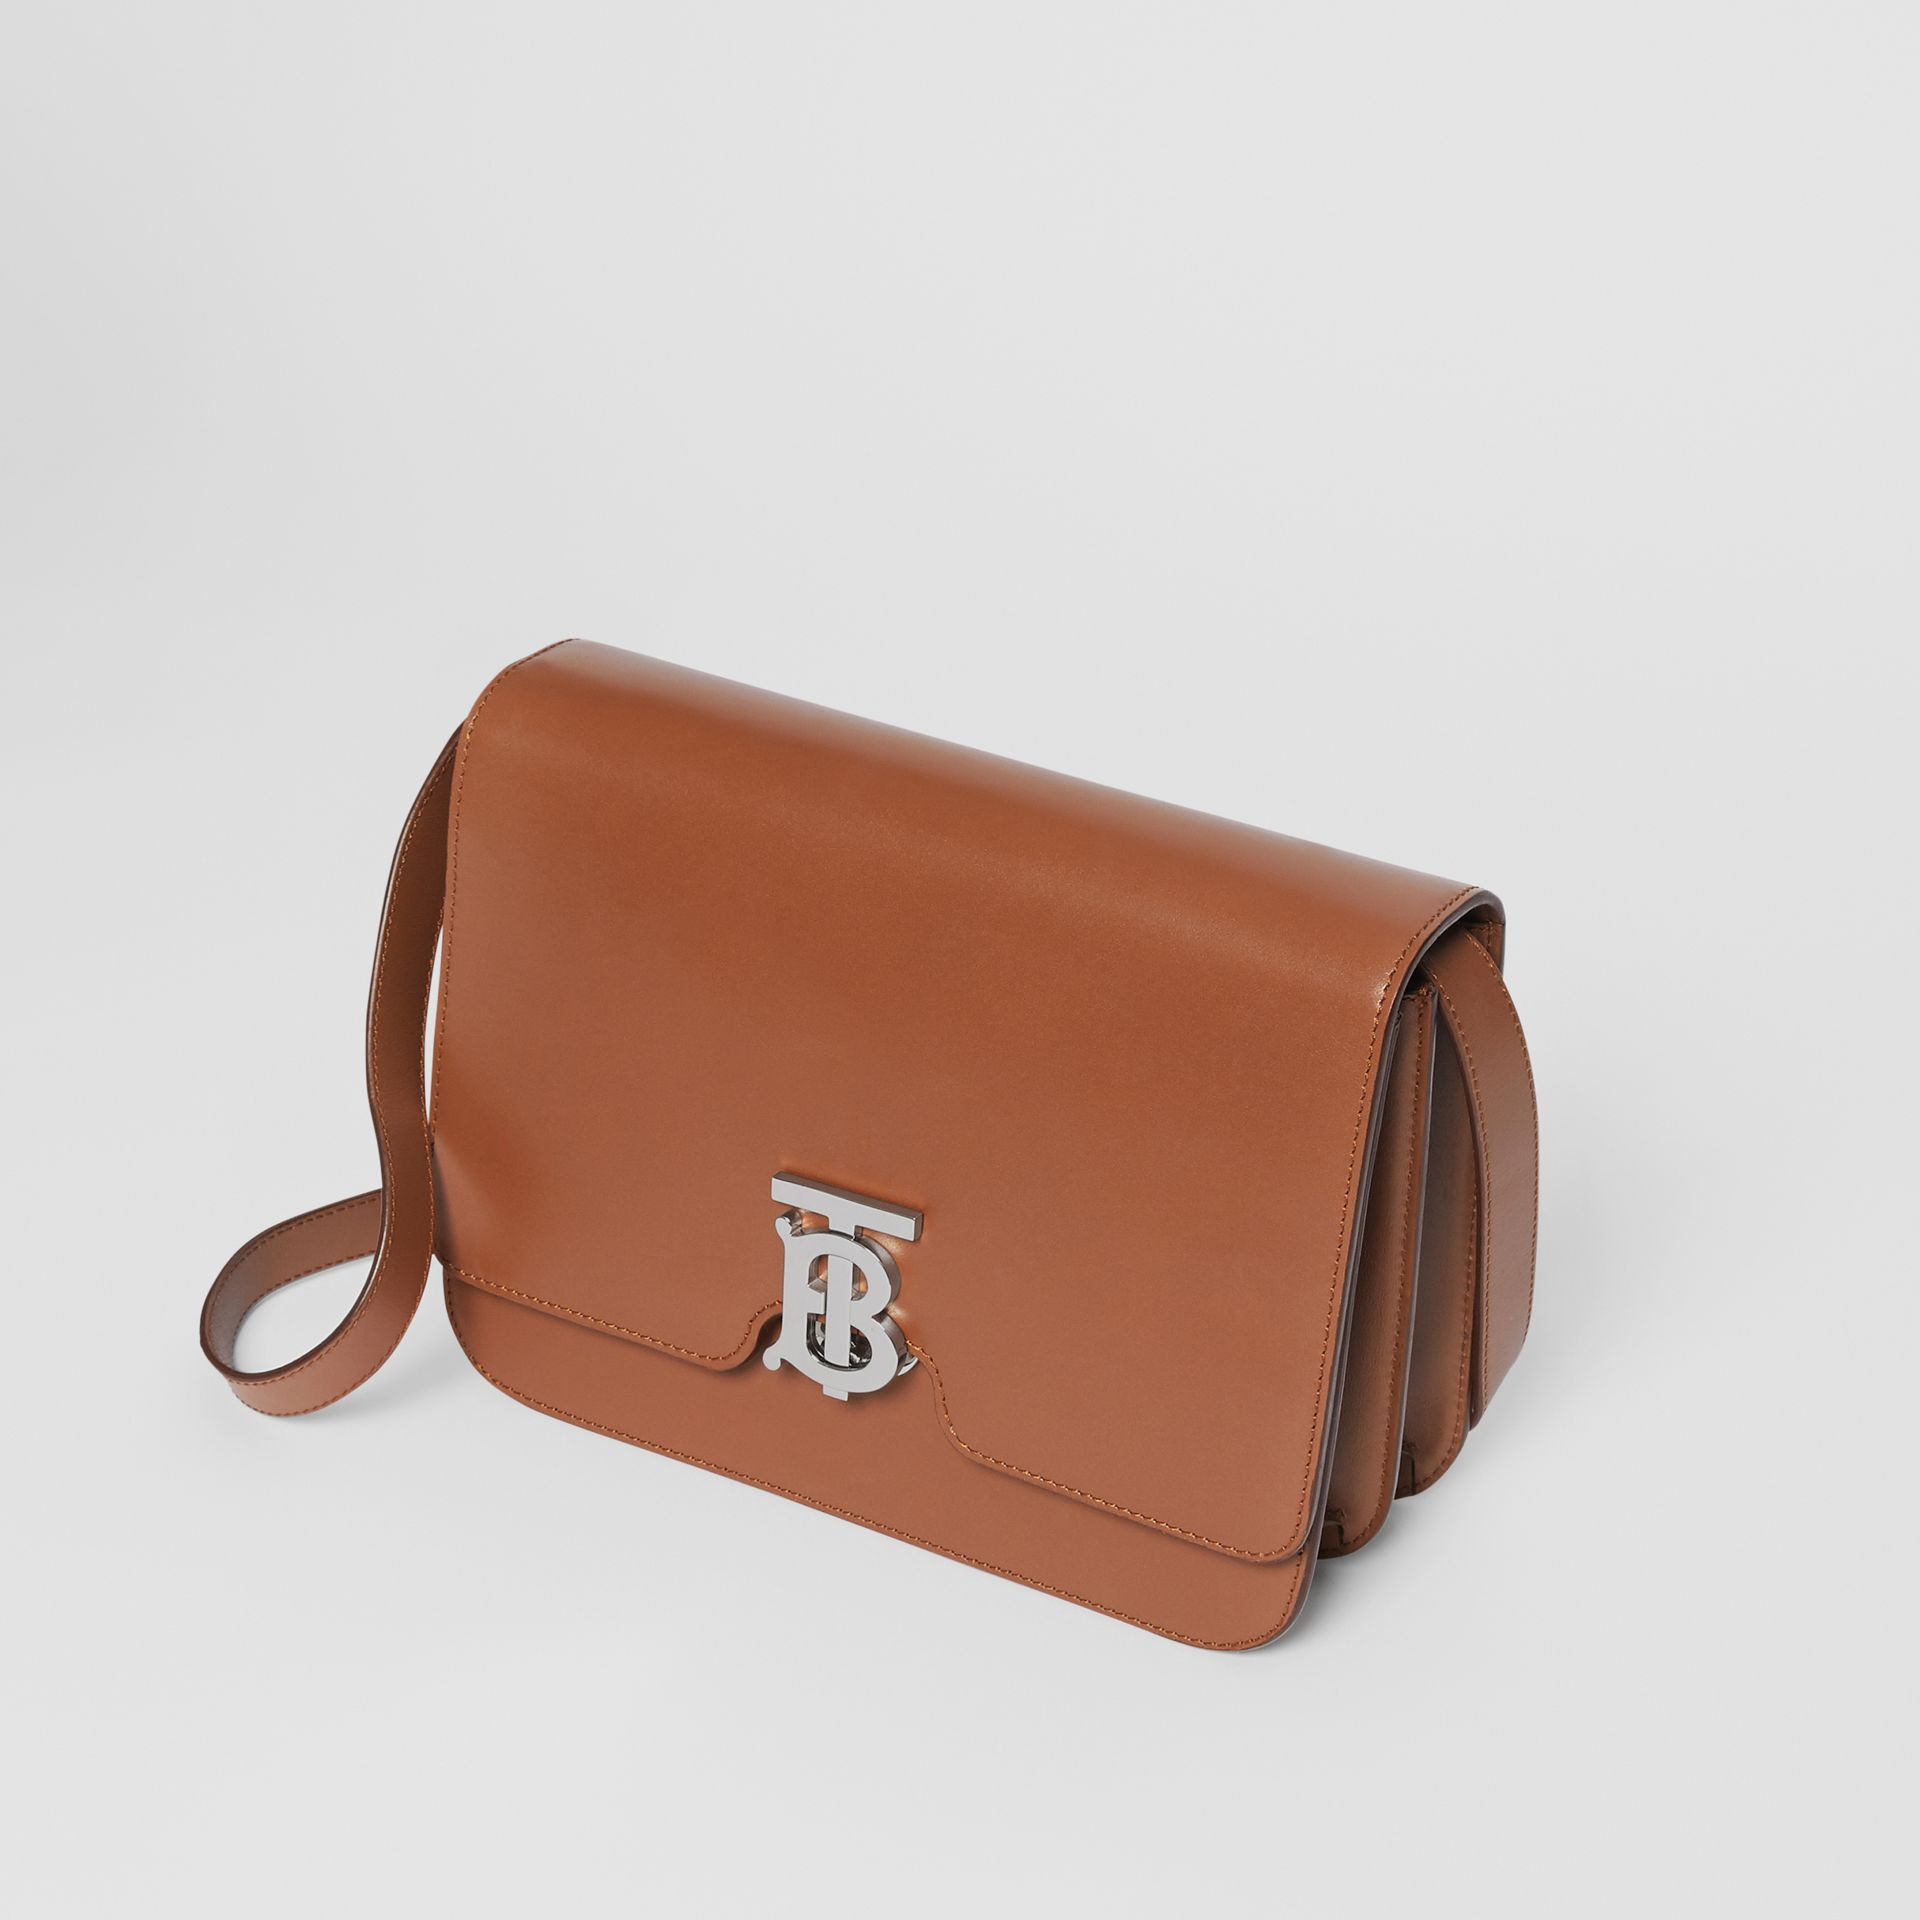 Medium Leather TB Bag in Malt Brown - Women | Burberry Canada - gallery image 3